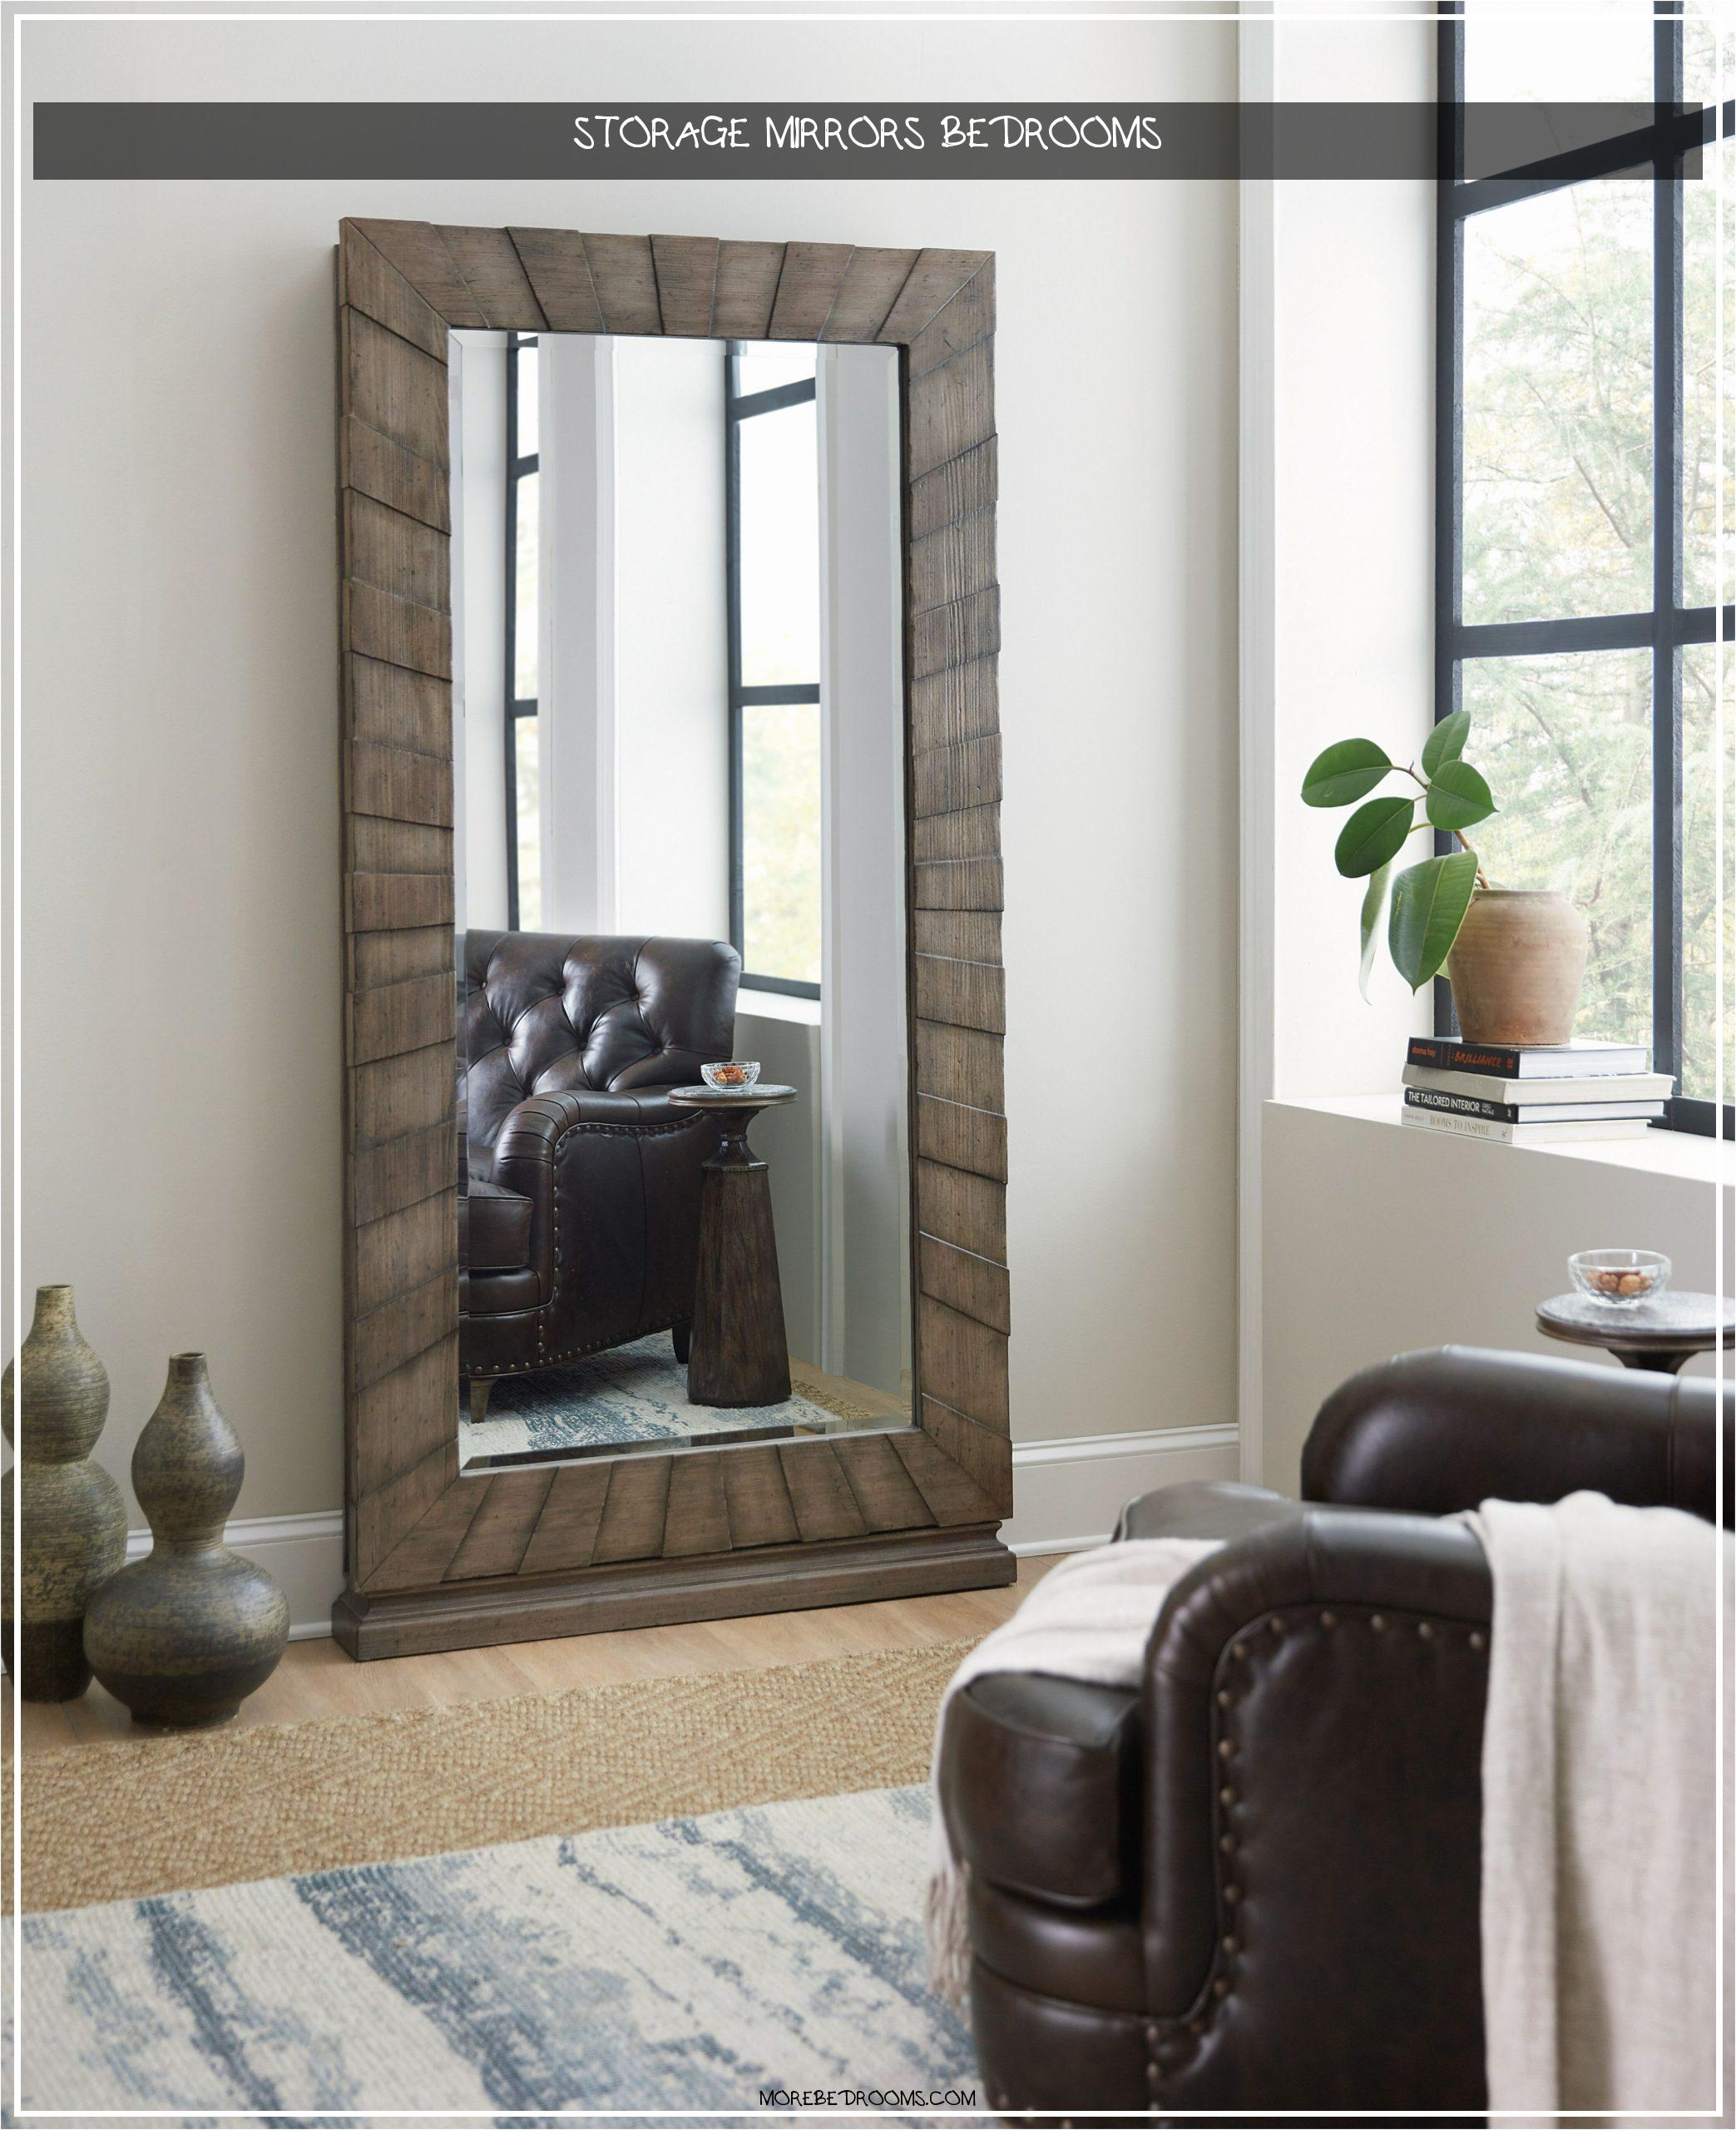 Storage Mirrors Bedrooms